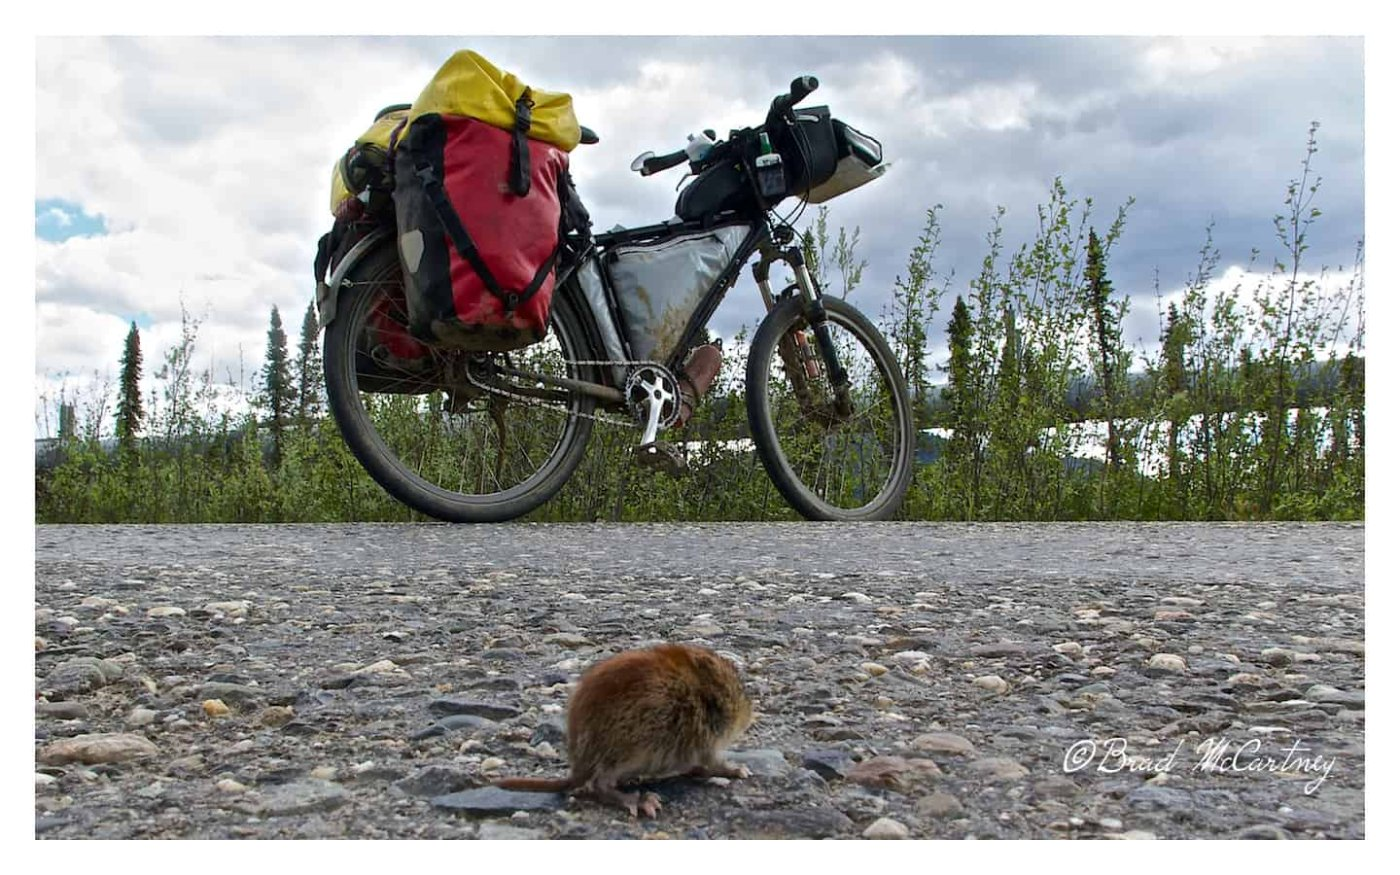 Critter warming up on the road